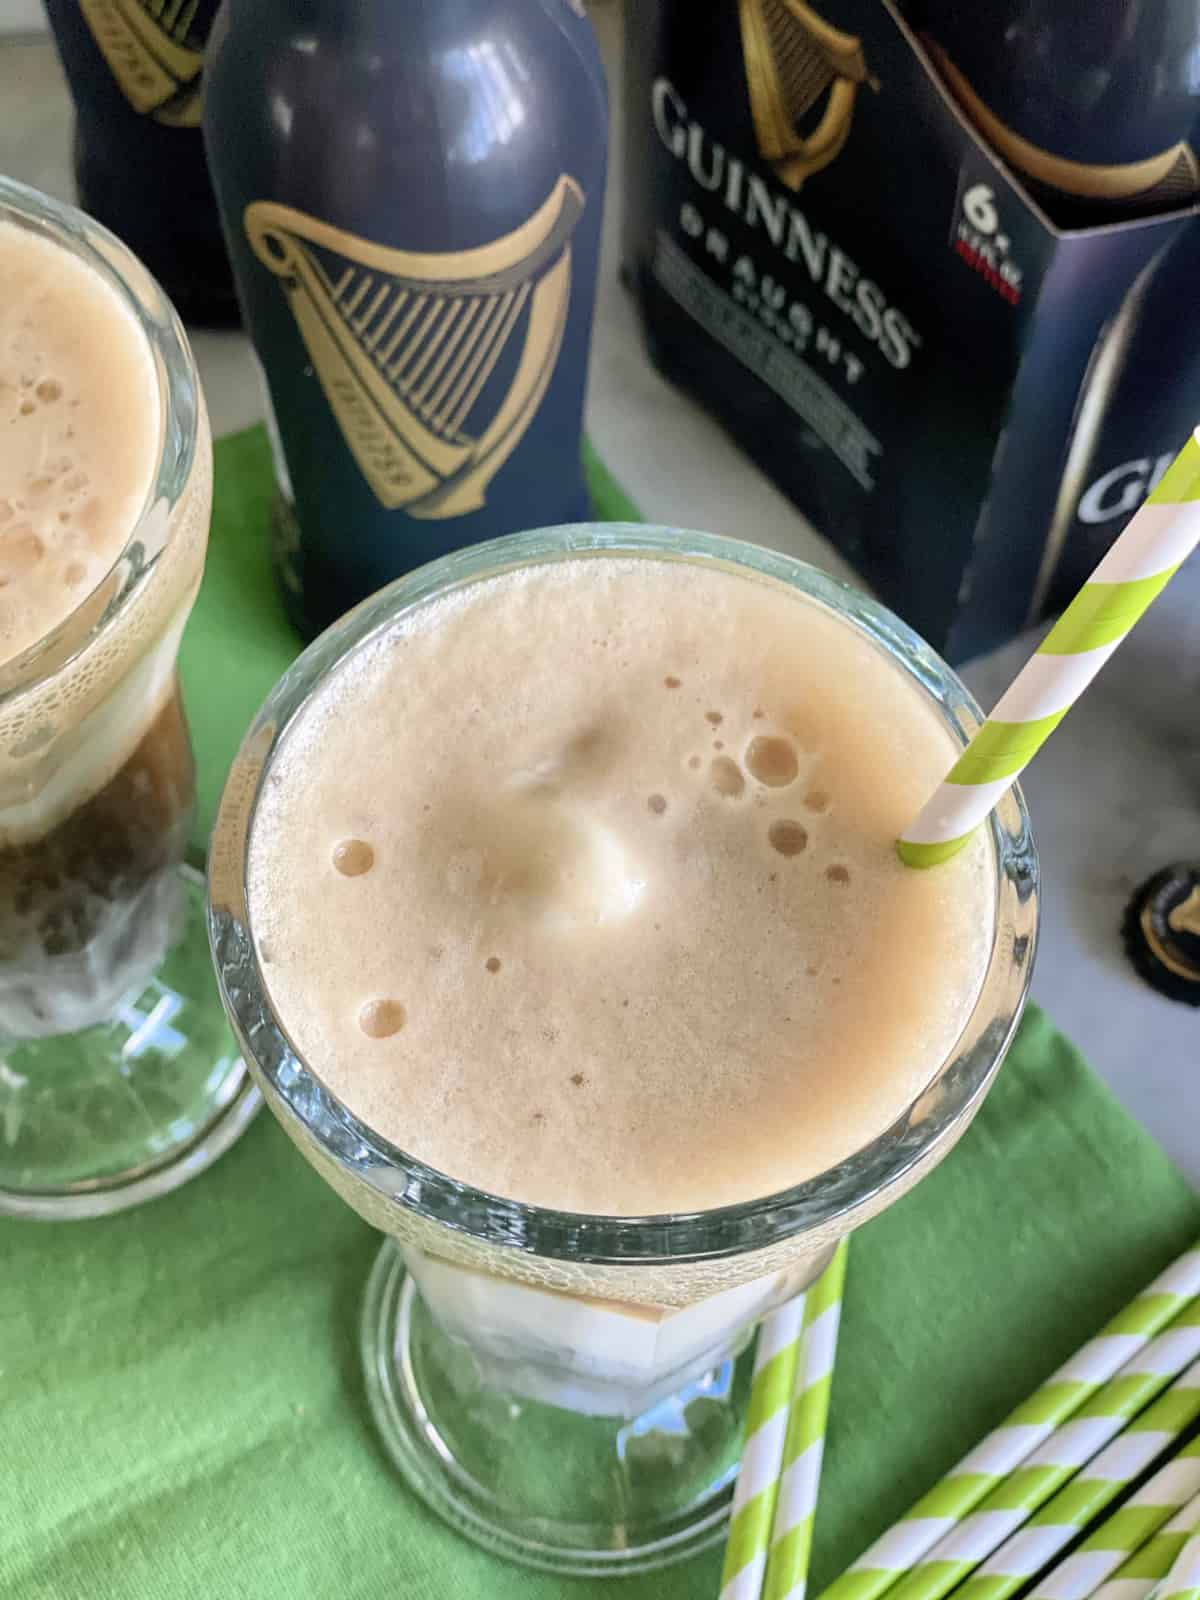 Top view of a beer float with a green and white paper straw.